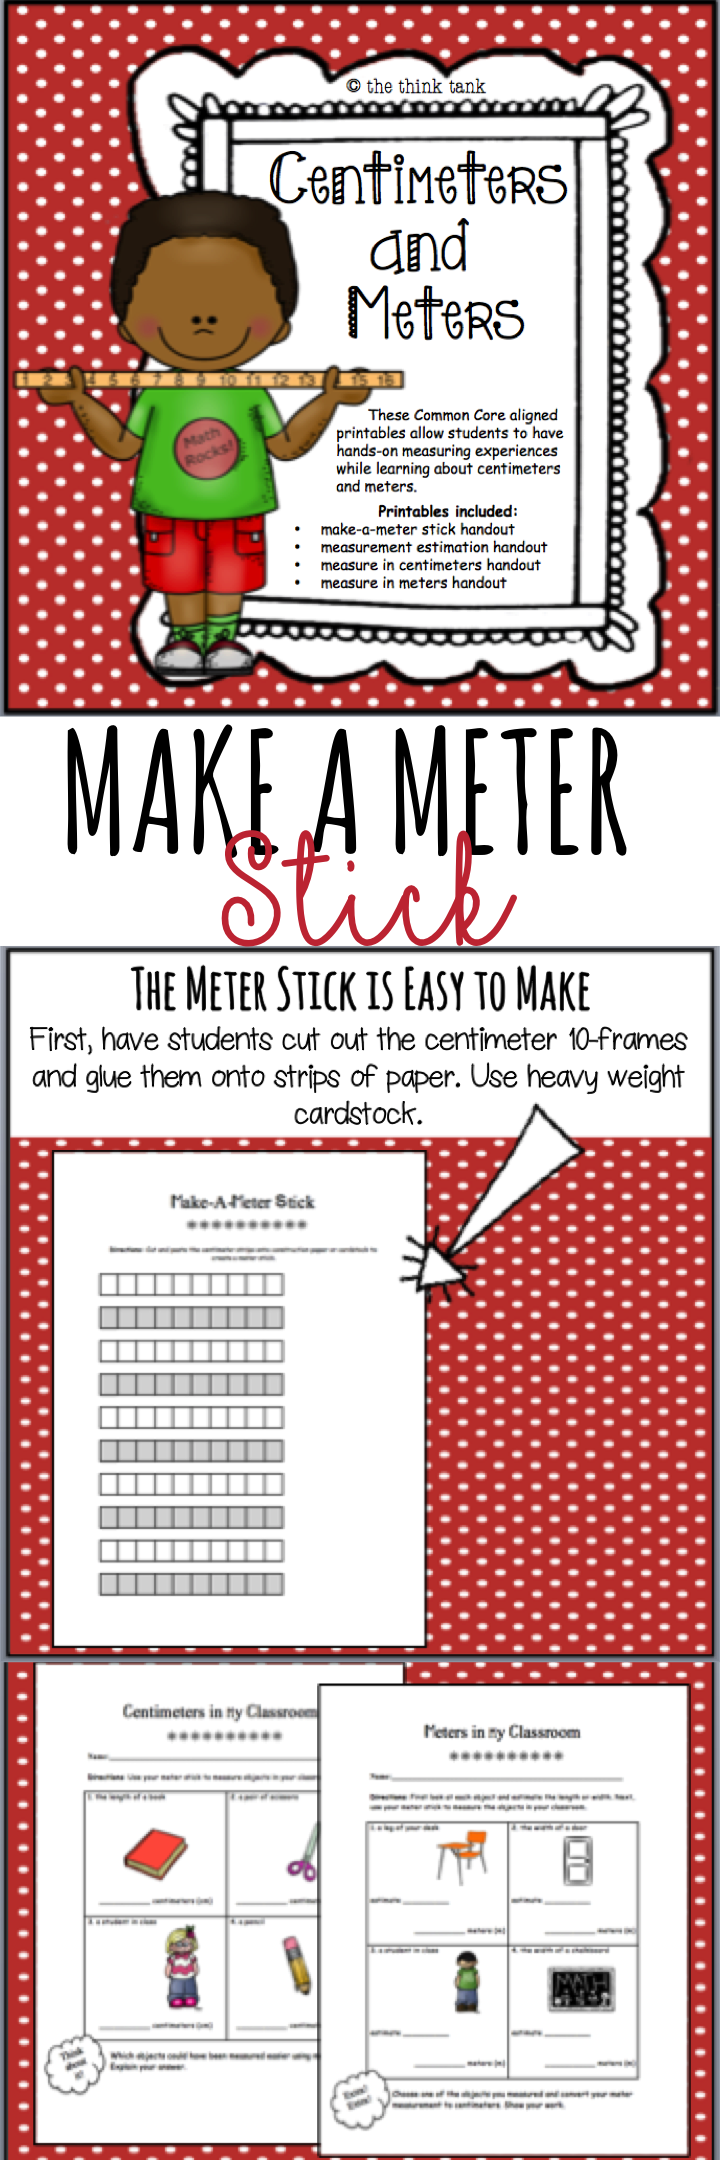 graphic relating to Printable Meter Stick titled Pin upon Best Math Actions